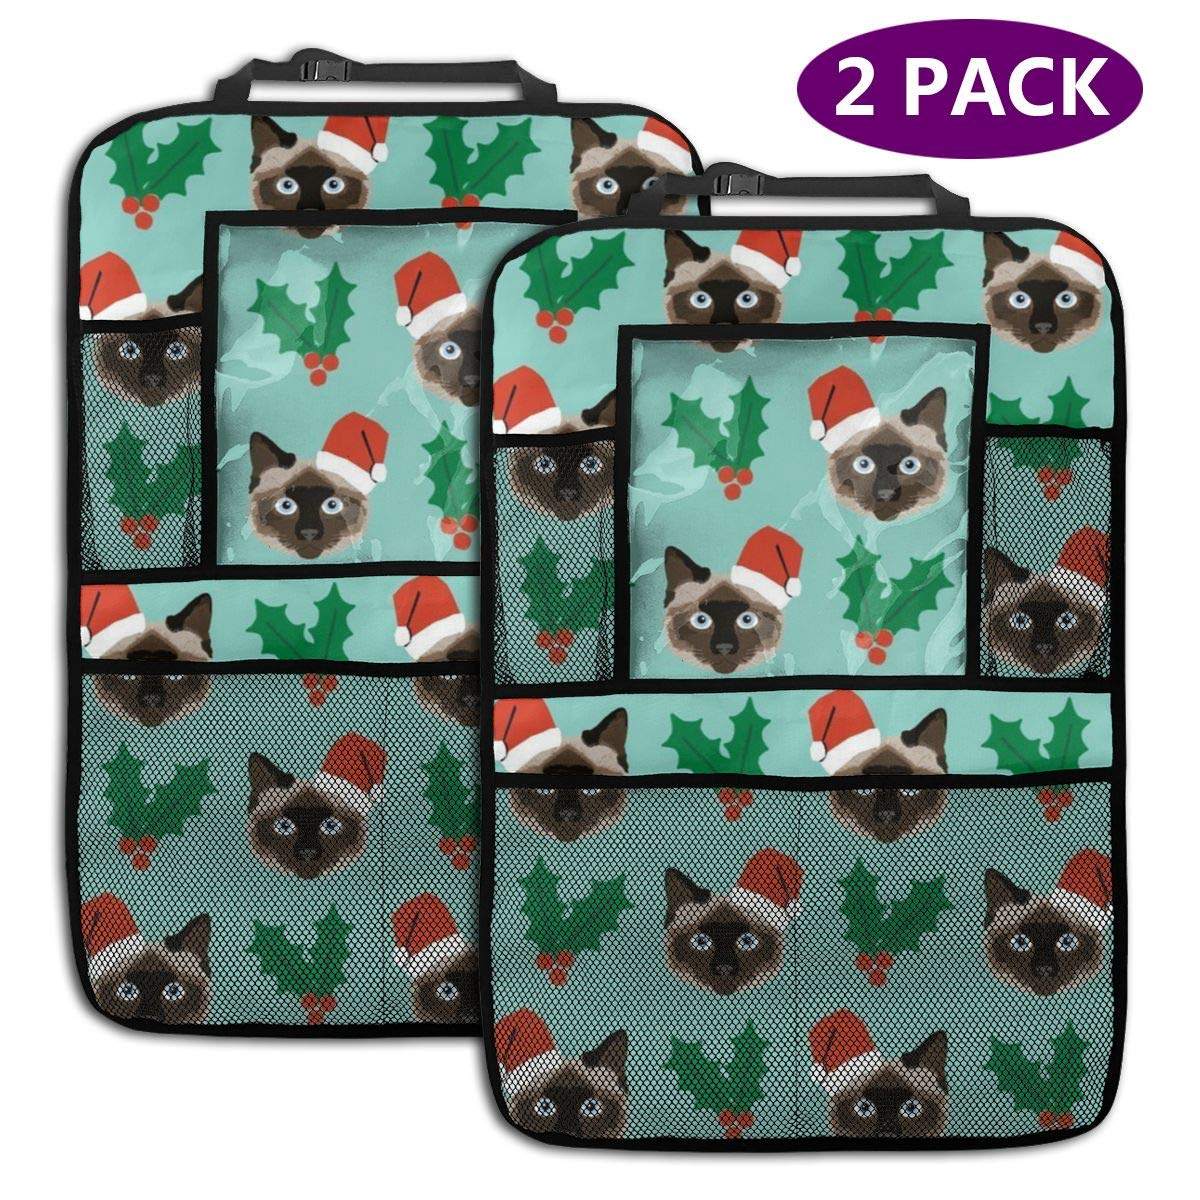 QF6FEICHAN Christmas Cat Car Seat Back Protectors with Storage Pockets Kick Mats Accessories for Kids and Toddlers by QF6FEICHAN